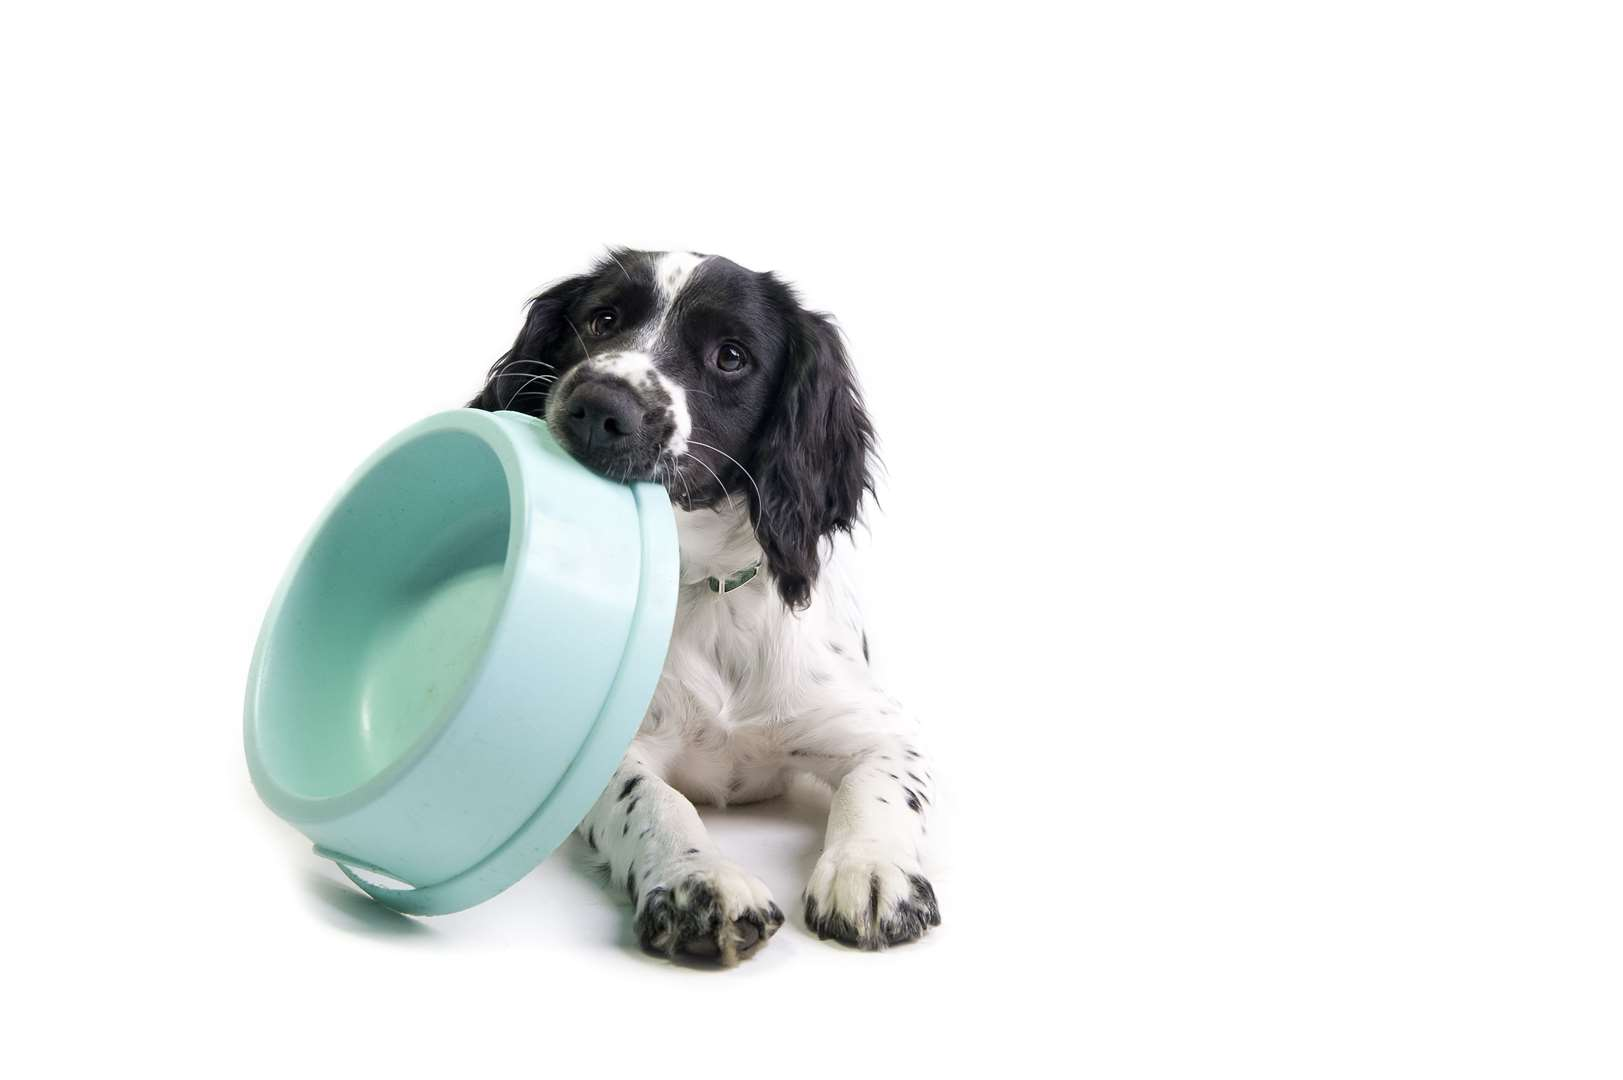 Some dog breeds are typically more prone to being overweight than others